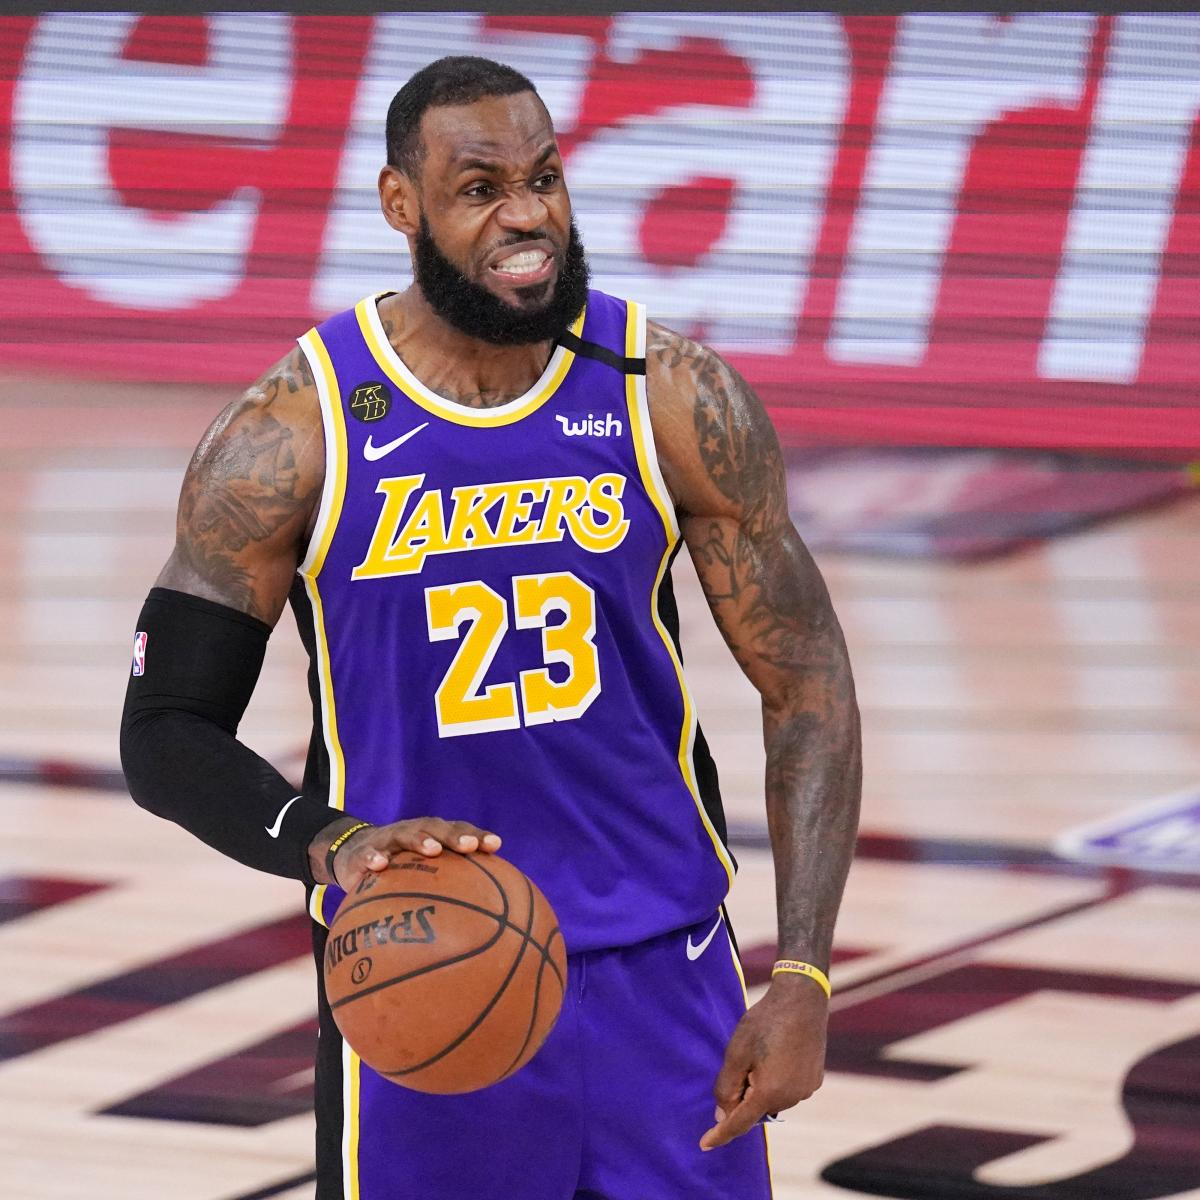 By Leading Lakers to Finals, LeBron James Reinforces Case as NBA's Best Player